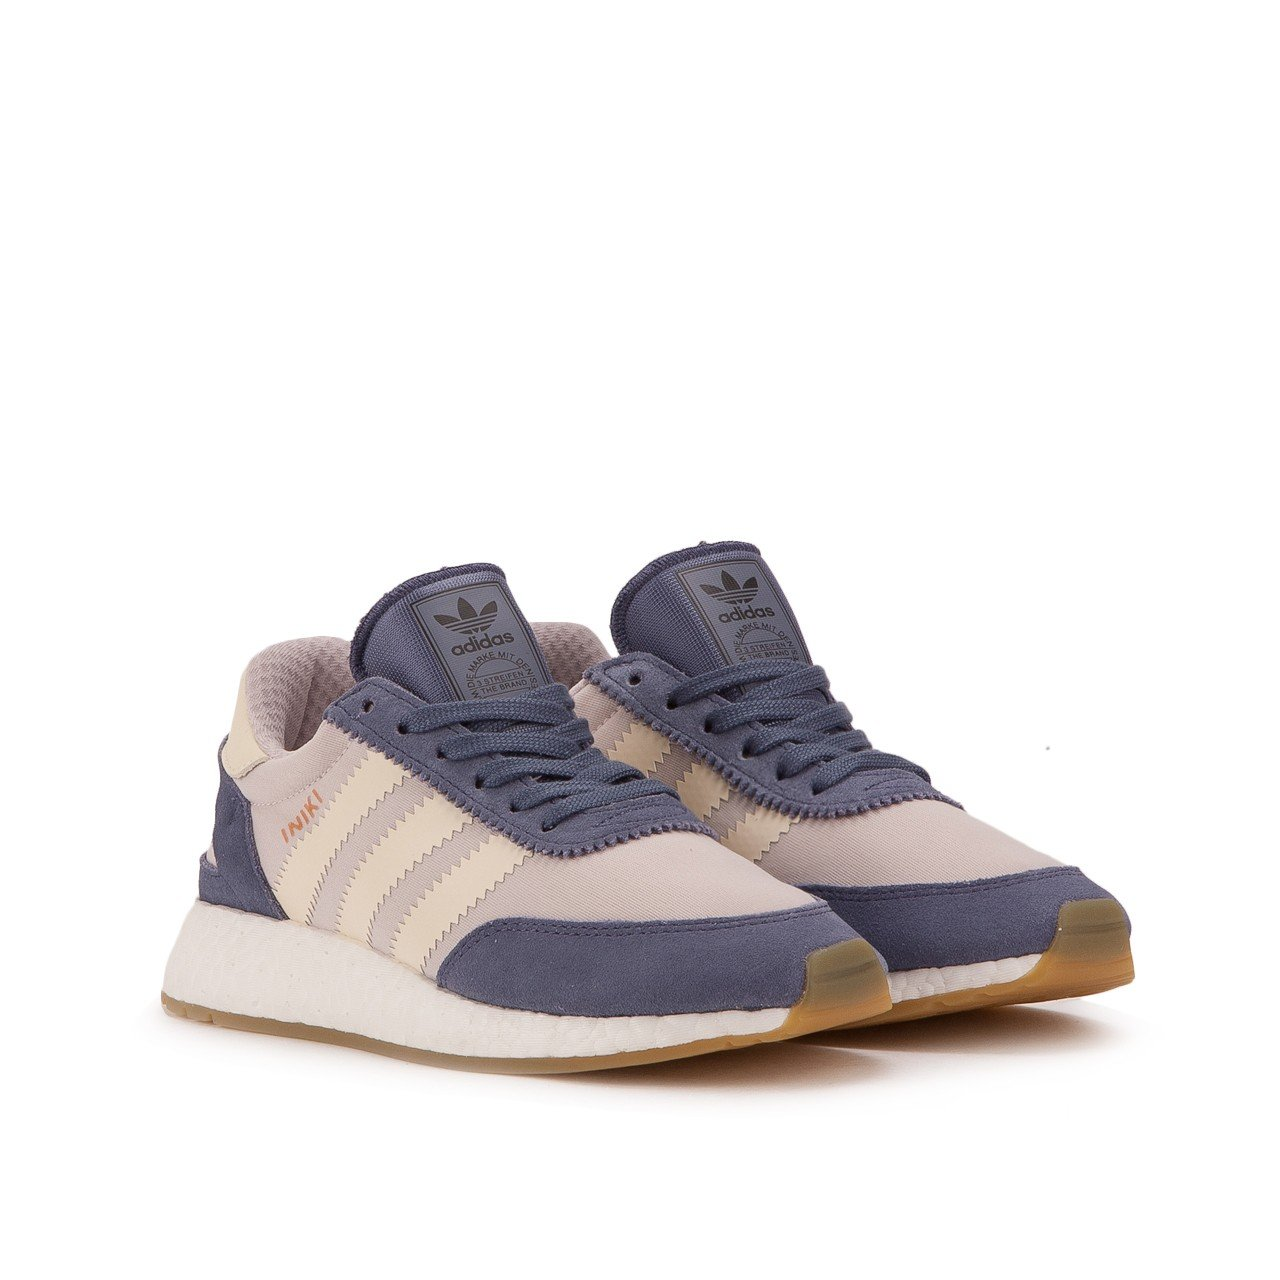 adidas Iniki Women's Off-White Sneakers B06XGMVD4R 9.5 B(M) US|Purple/White/Ice Purple